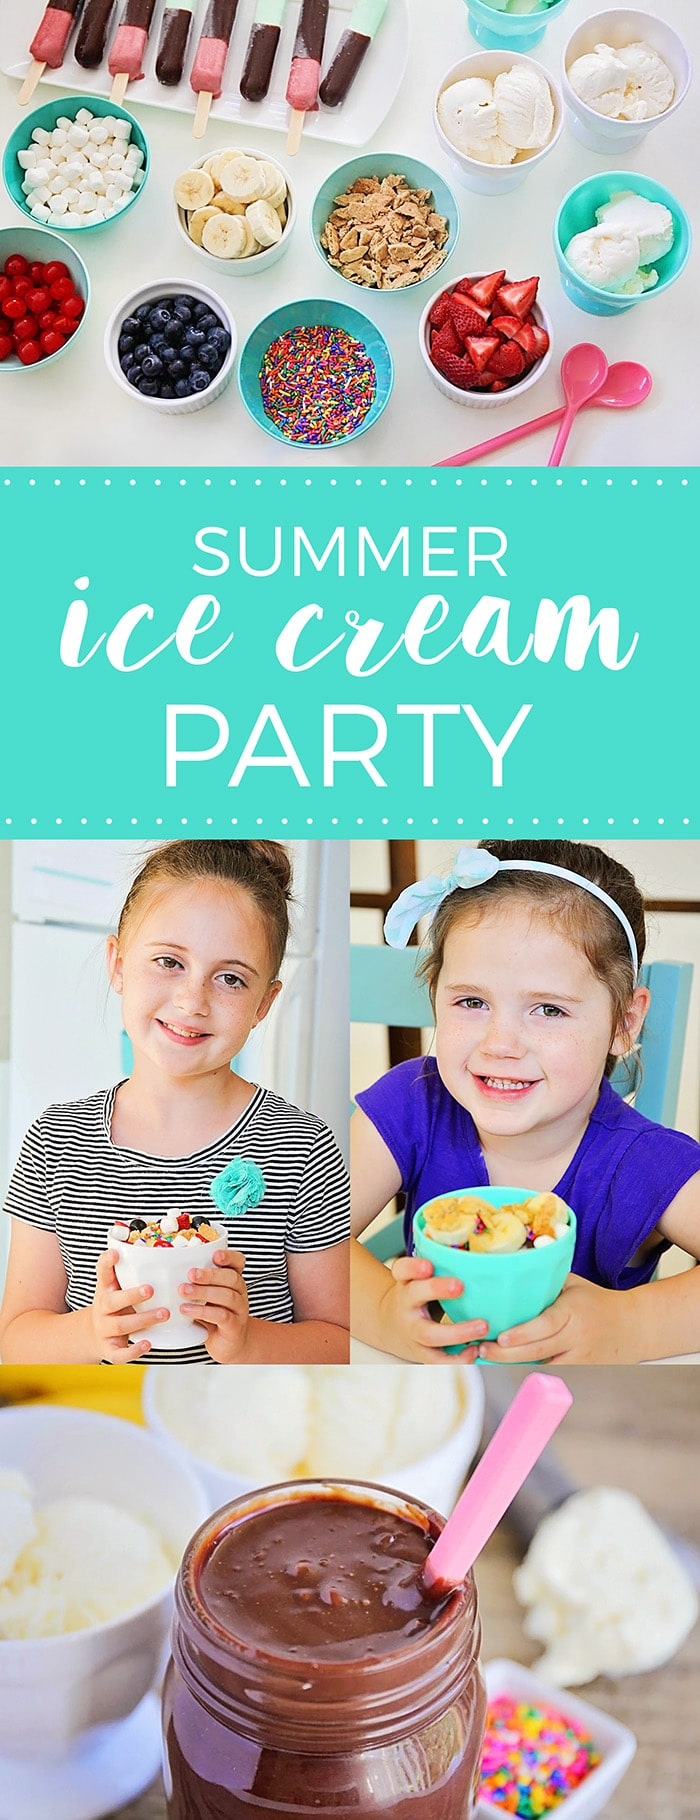 Stay cool this summer with a fun and easy summer ice cream party! via @somewhatsimple